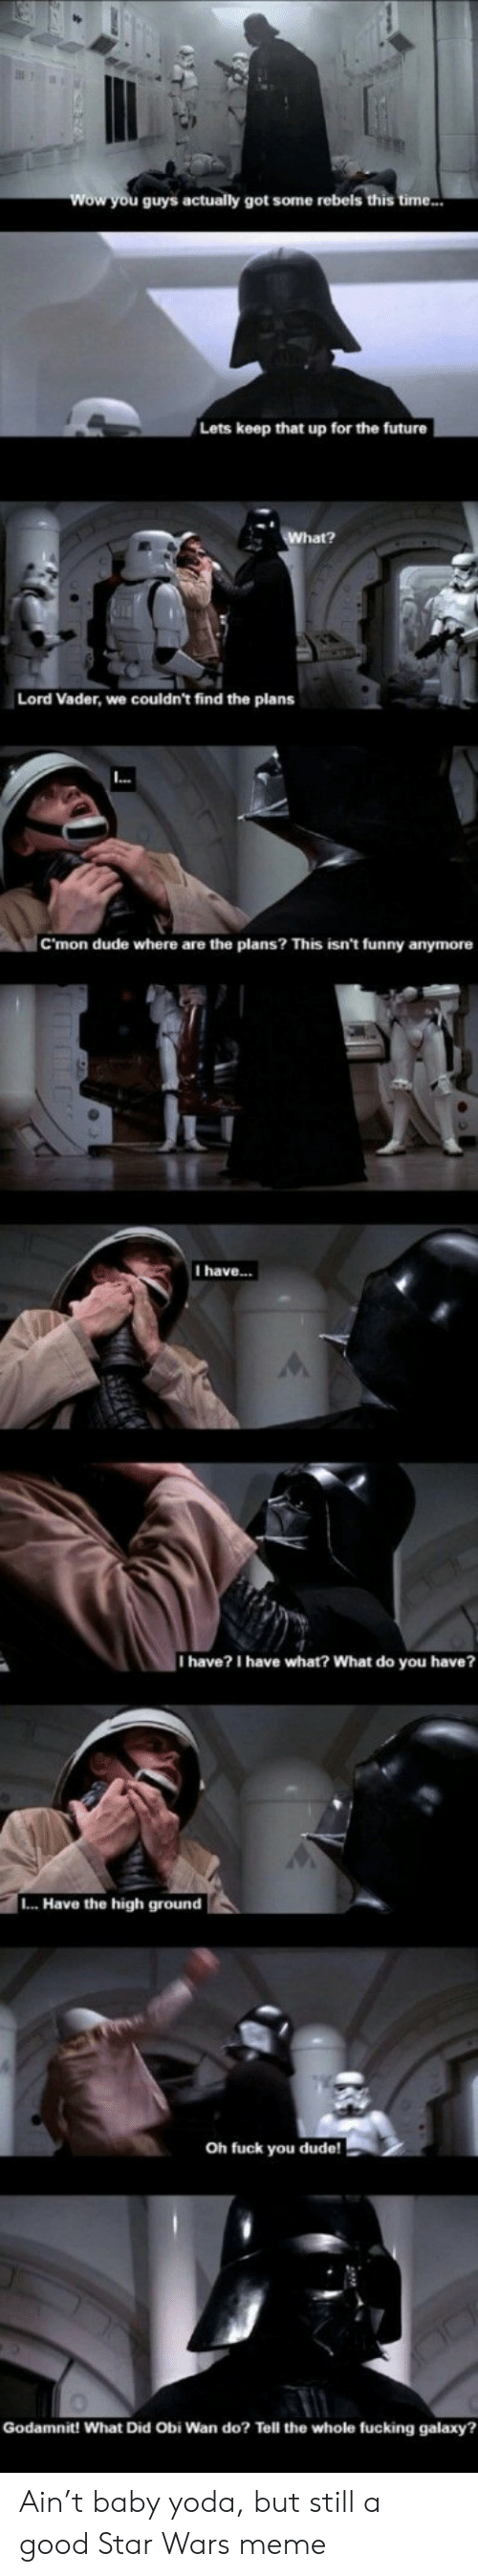 Dude, Funny, and Future: Wow you guys actually got some rebels this time...  Lets keep that up for the future  What?  Lord Vader, we couldn't find the plans  .  C'mon dude where are the plans? This isn't funny anymore  I have..  I have? I have what? What do you have?  L.. Have the high ground  Oh fuck you dude!  Godamnit! What Did Obi Wan do? Tell the whole fucking galaxy? Ain't baby yoda, but still a good Star Wars meme